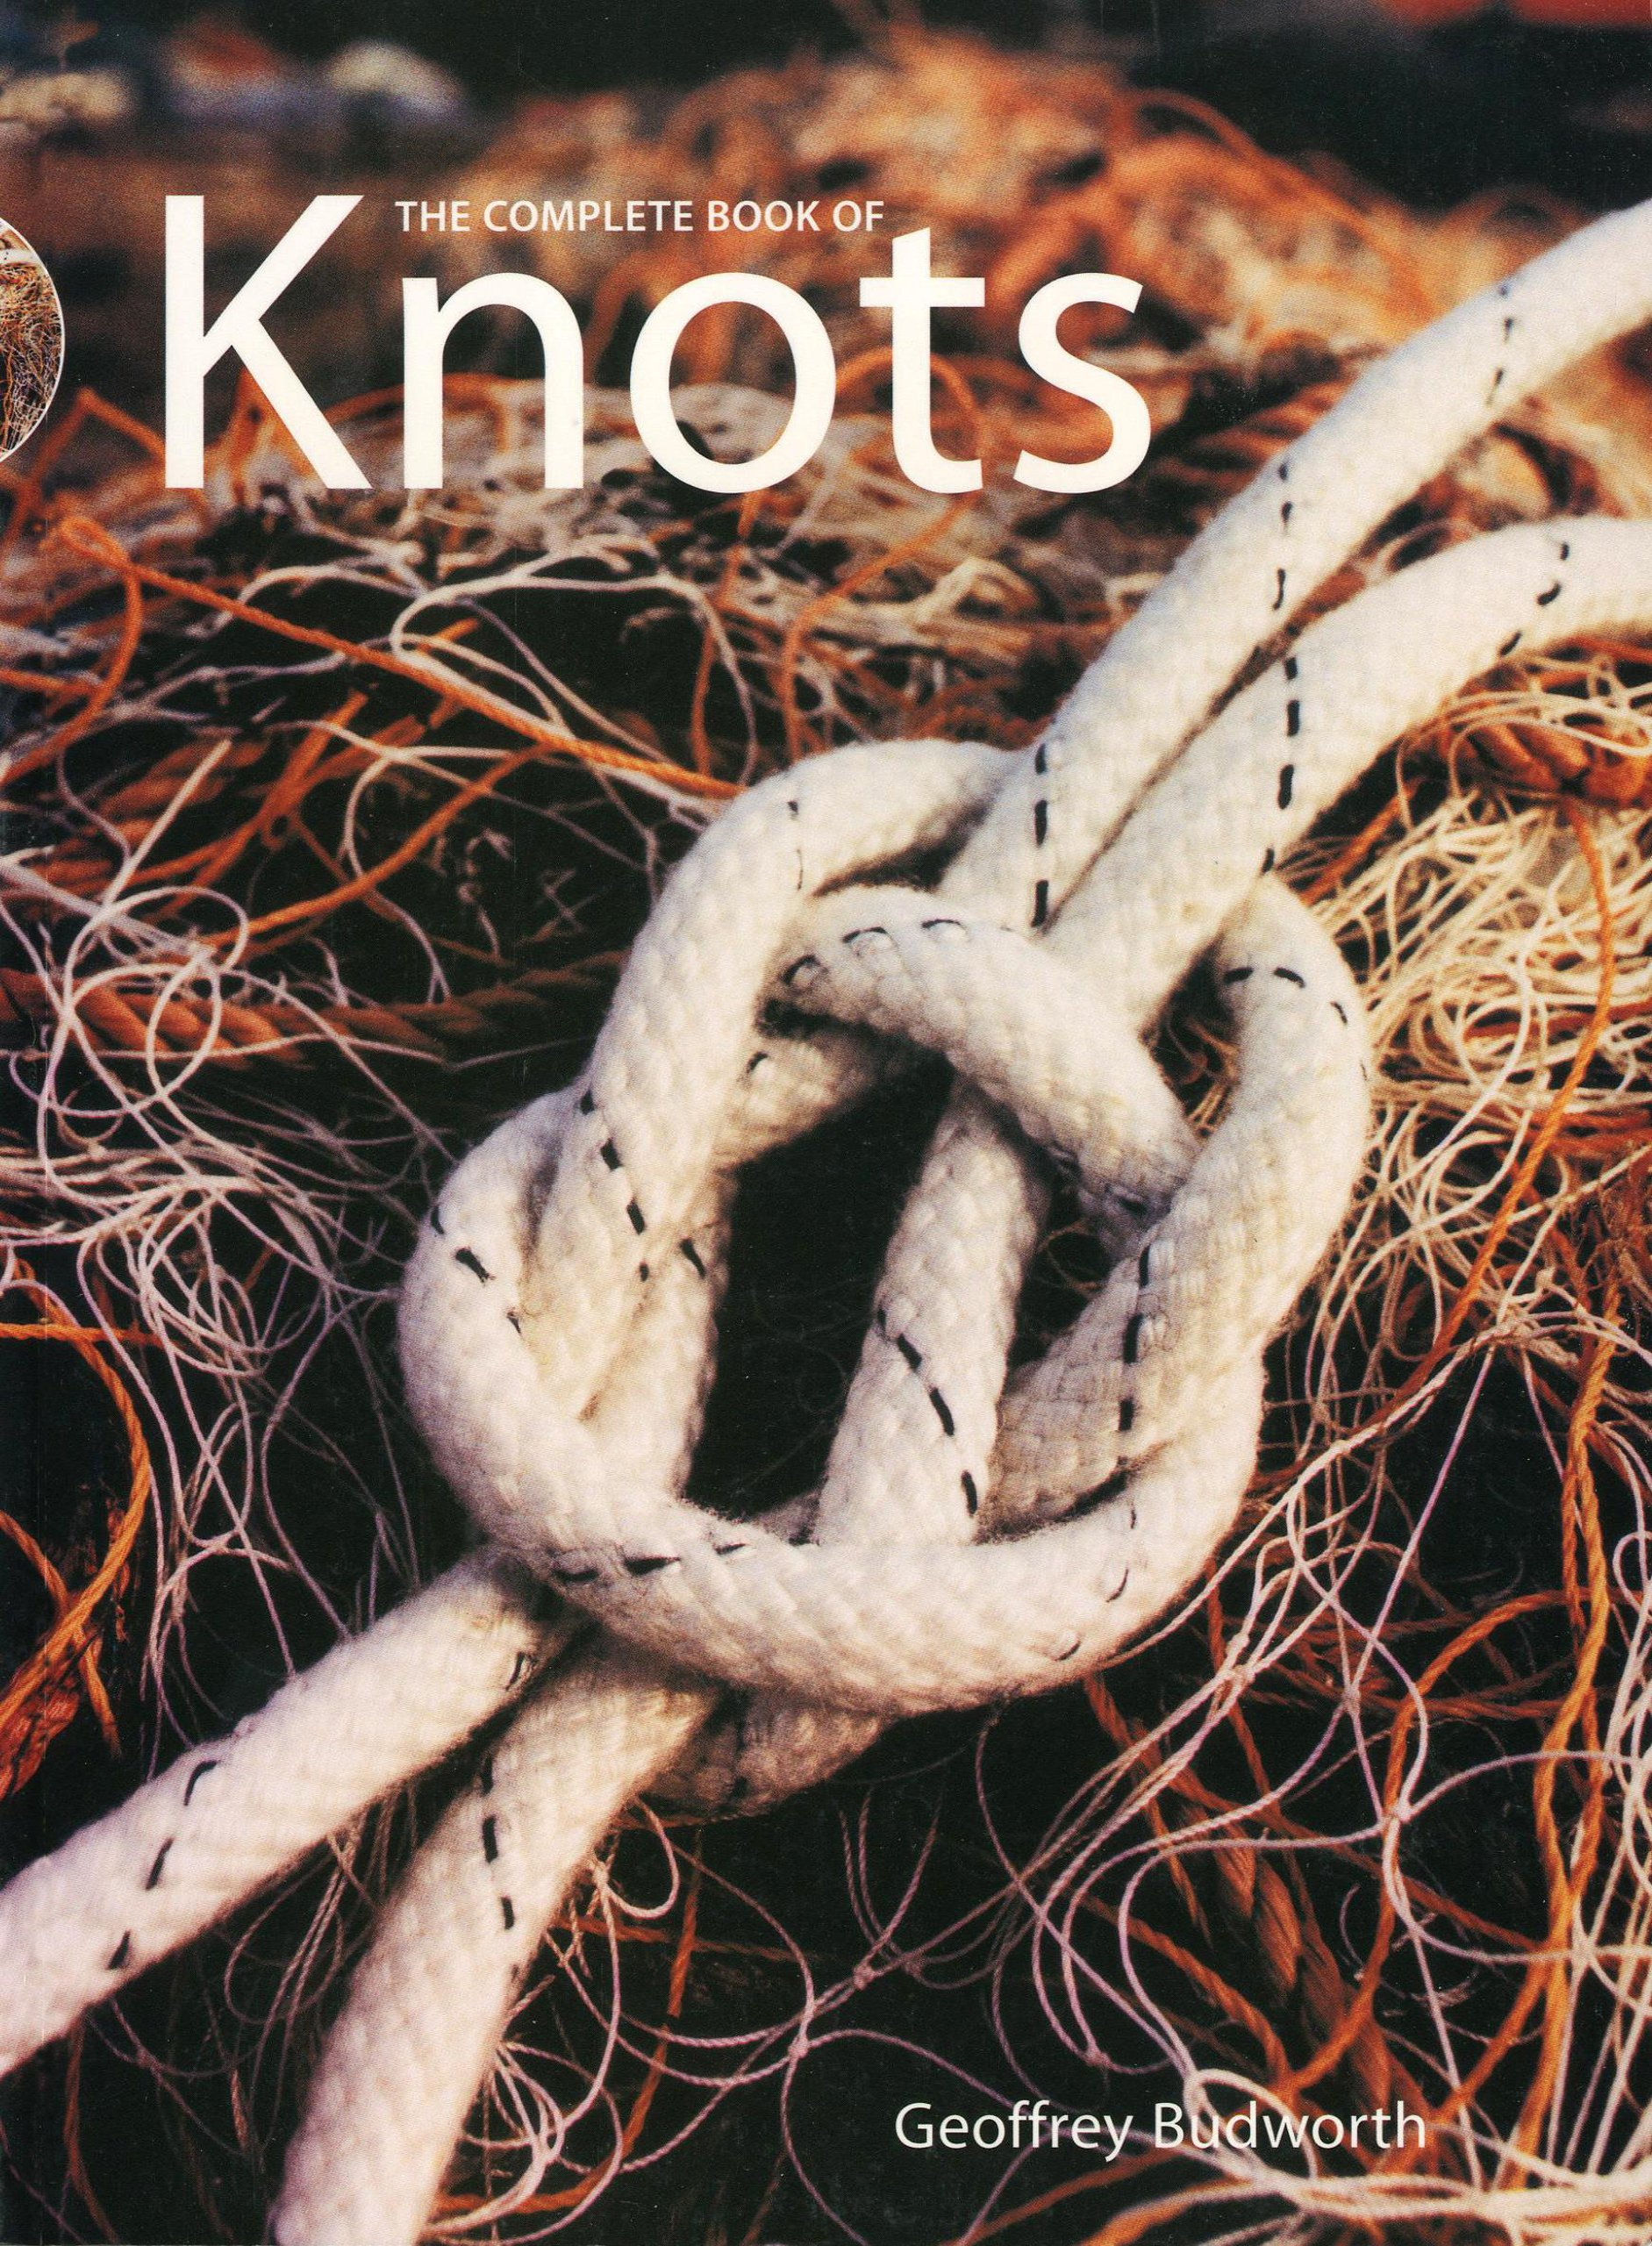 The Complete Book of Knots: Geoffrey Budworth: 9781558216327: Amazon.com:  Books